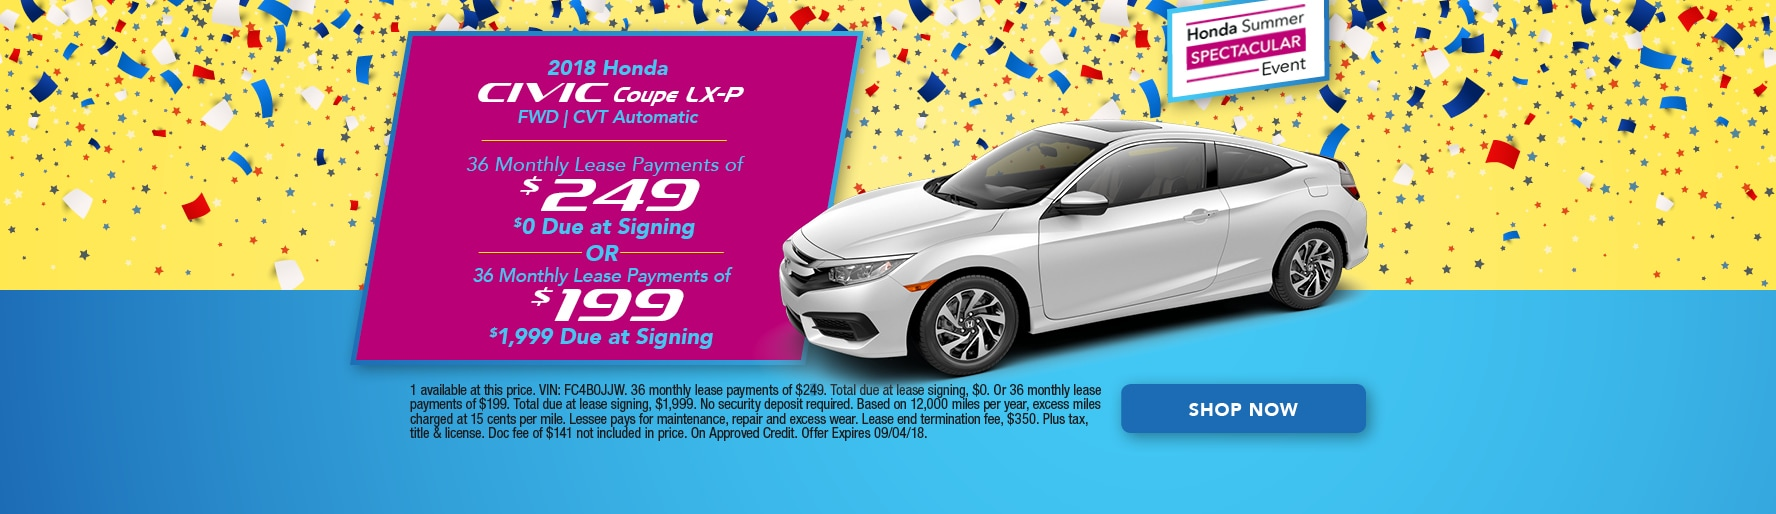 Honda Dealer Wexford PA